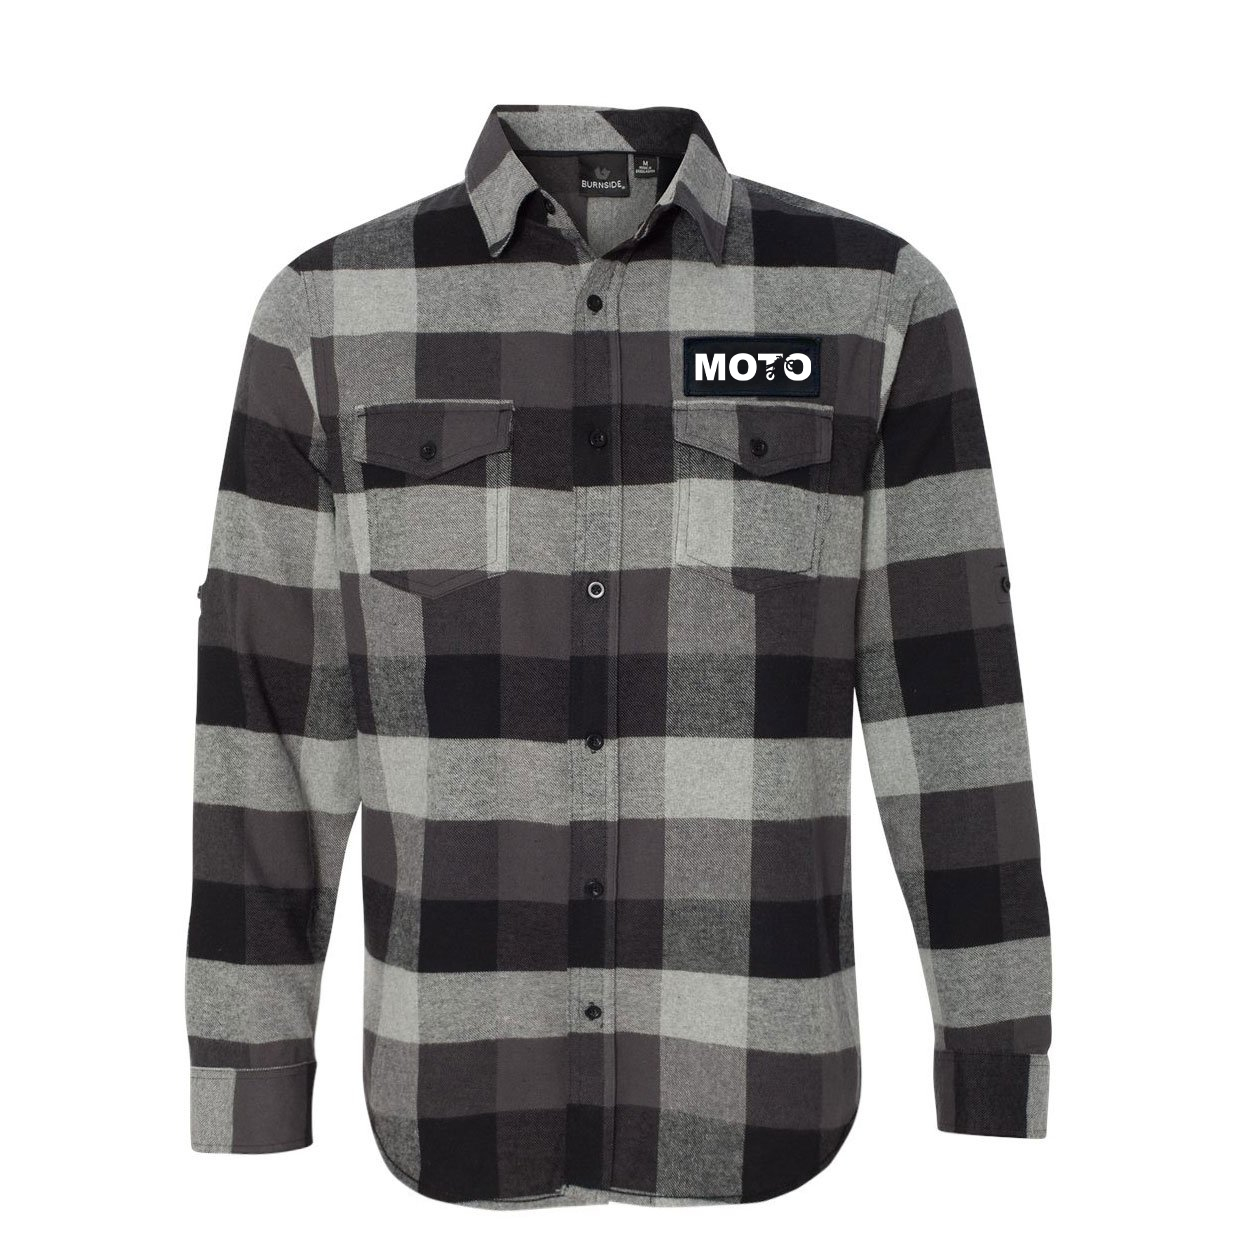 Moto Wheelie Logo Classic Unisex Long Sleeve Woven Patch Flannel Shirt Black/Gray (White Logo)